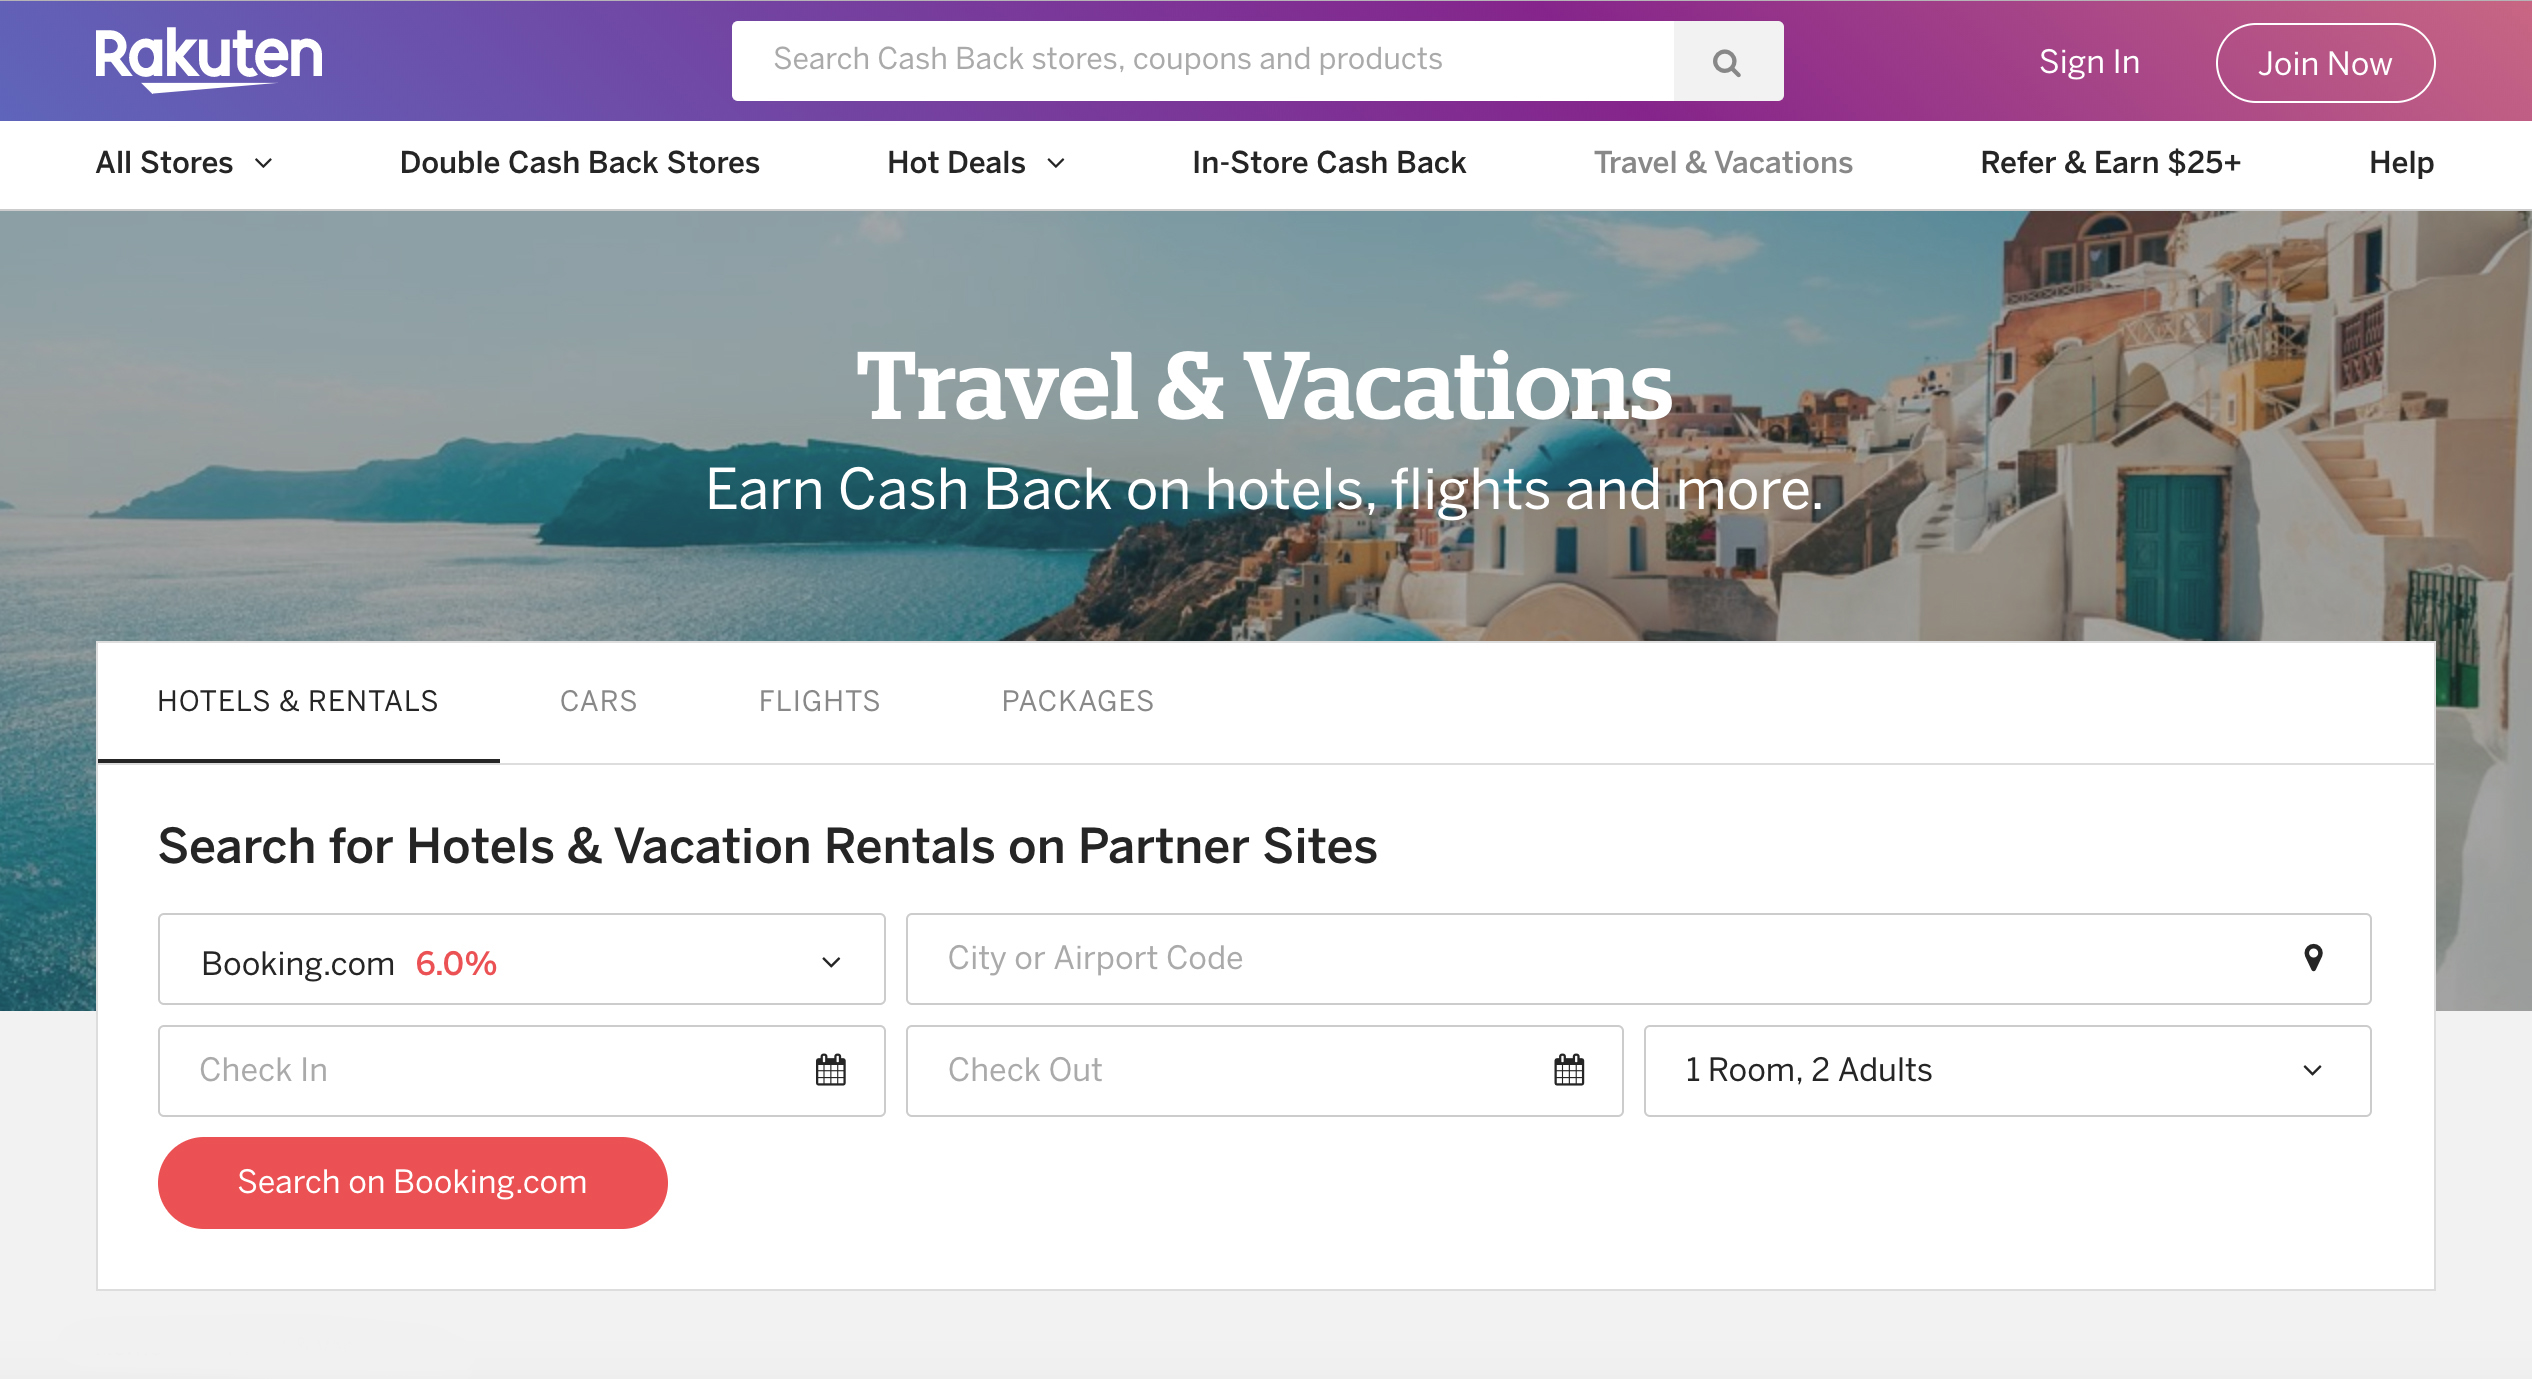 Rakuten Travel & Vacations homepage